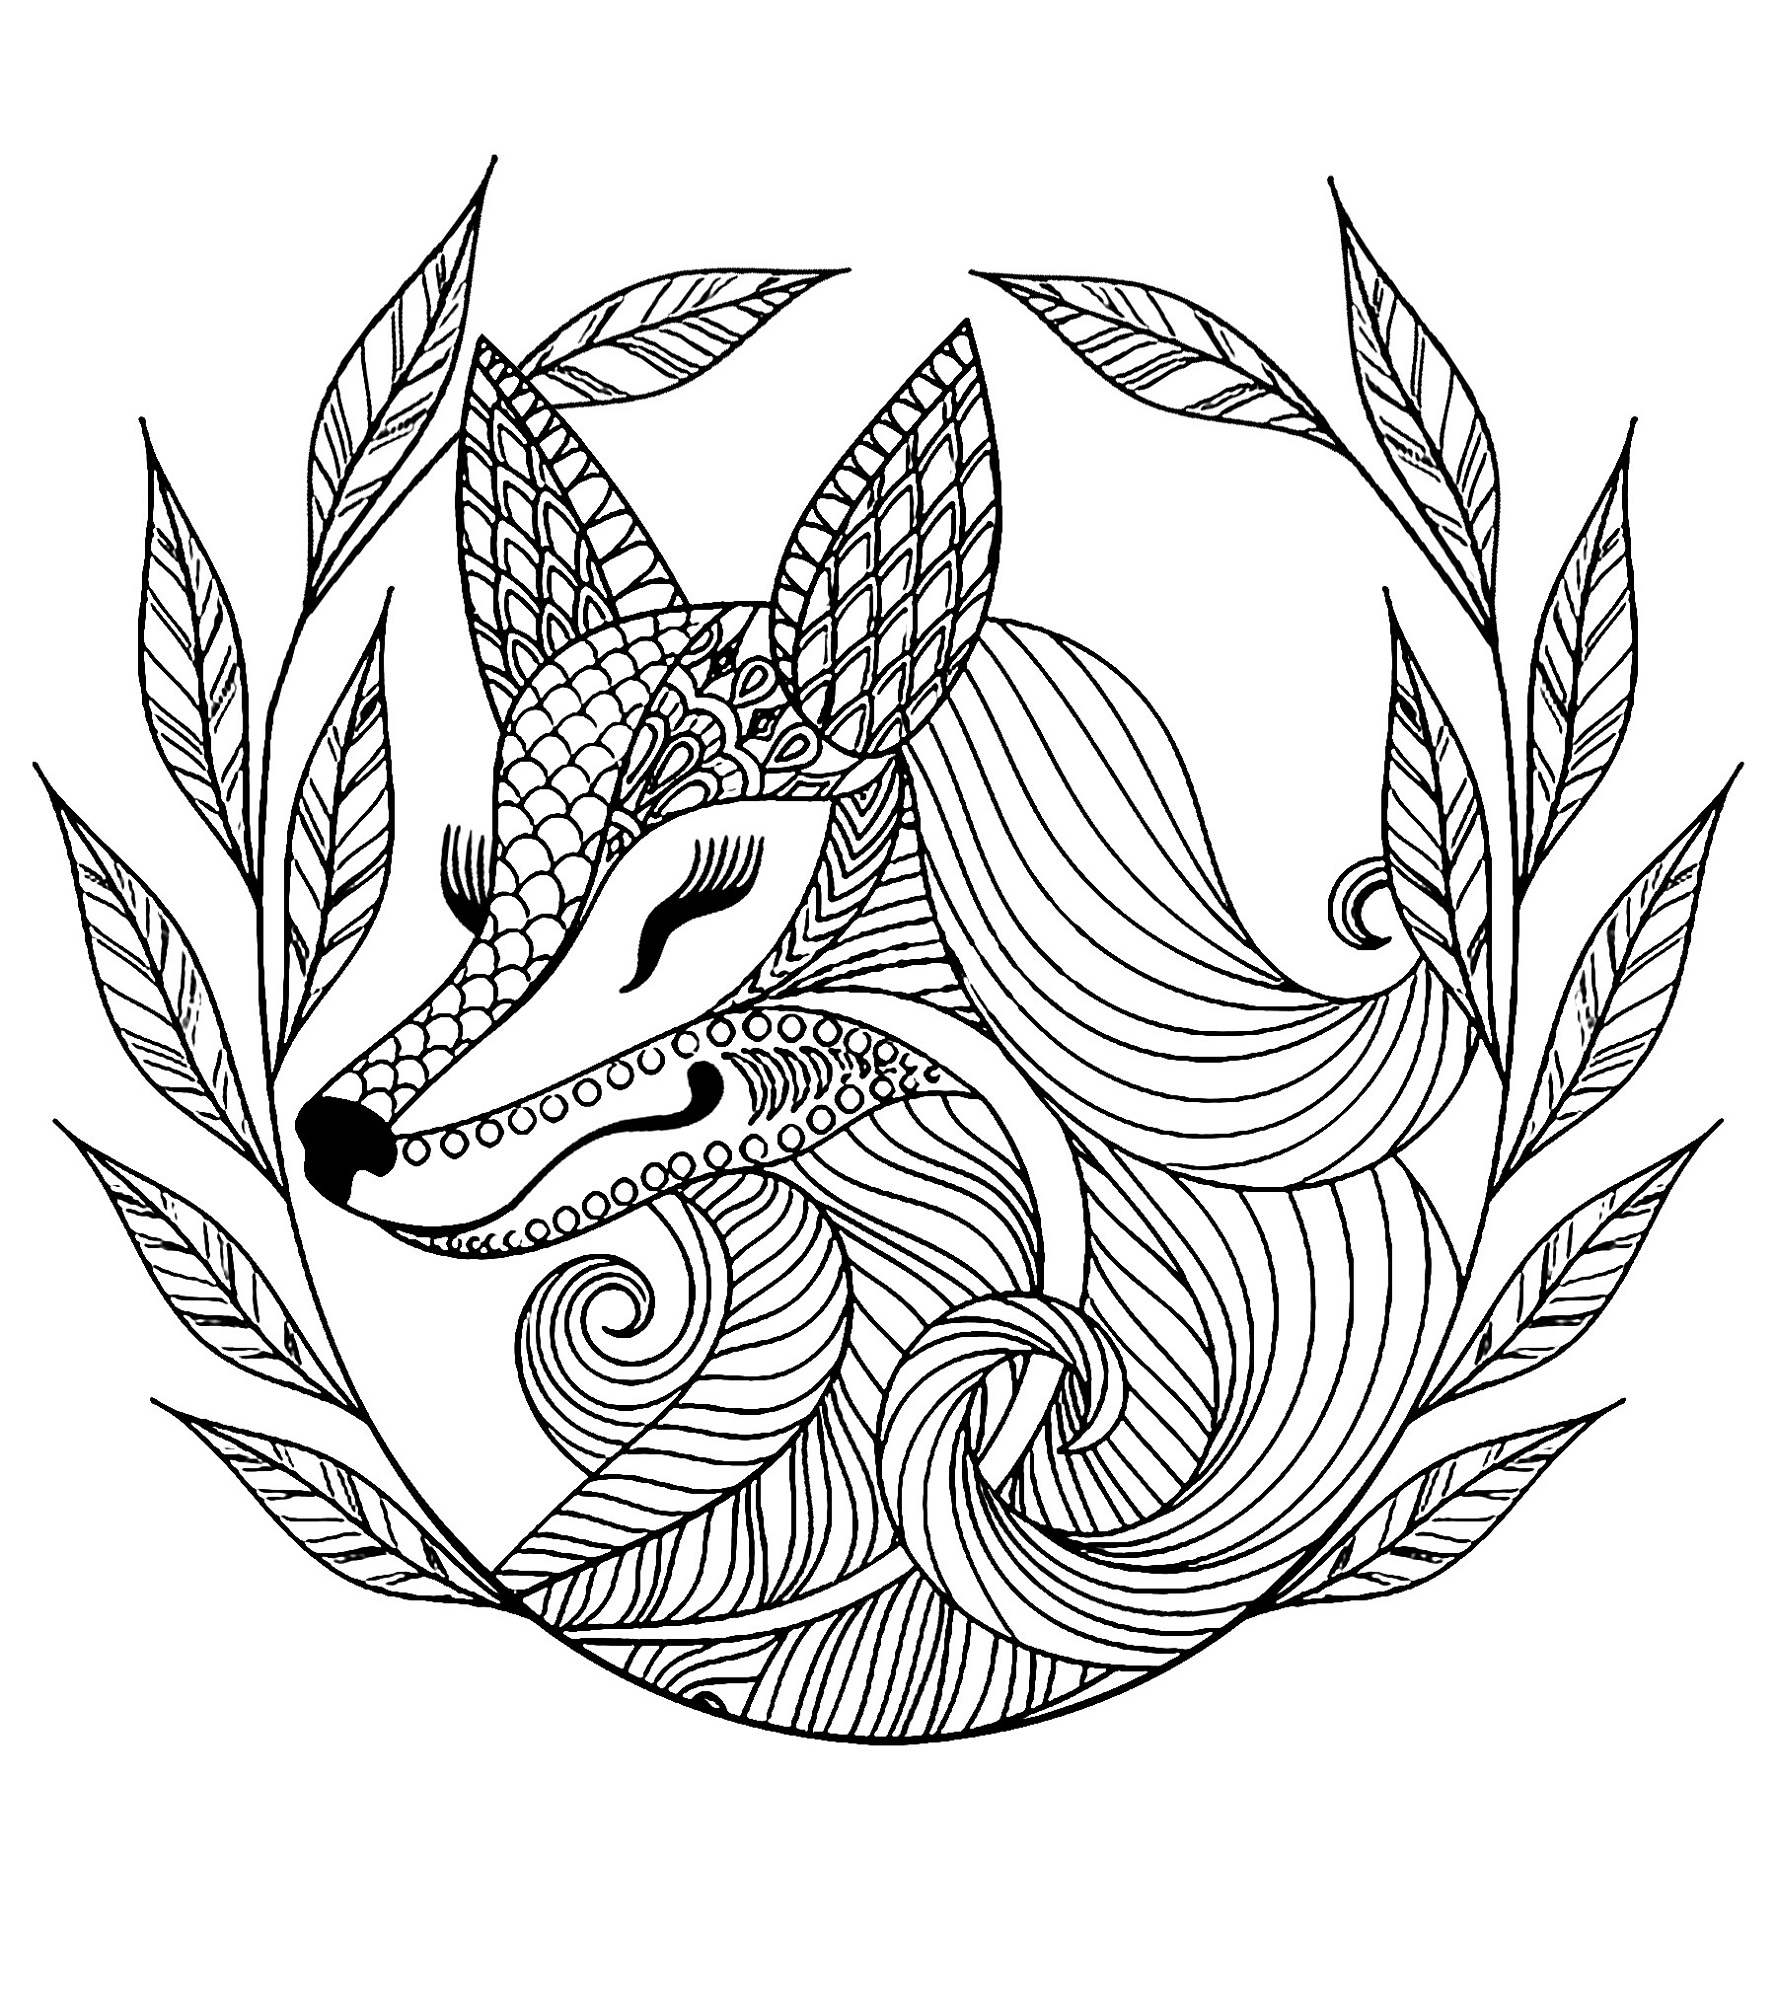 Cool Fox Coloring Pages For Kids And Adults 101 Coloring